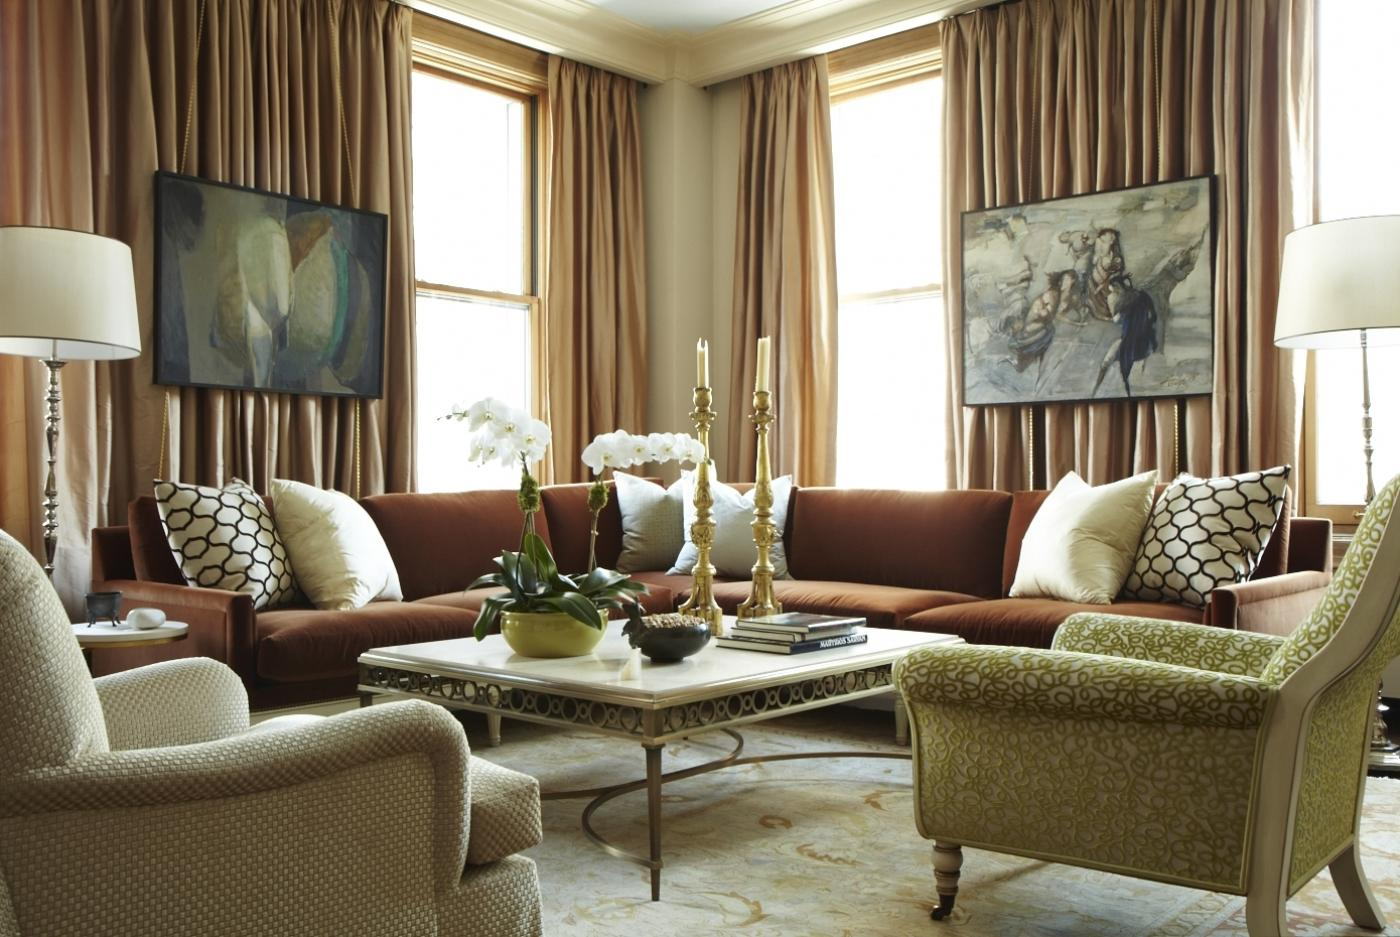 Top 4 Interior Design Projects Of The Week:A Refined